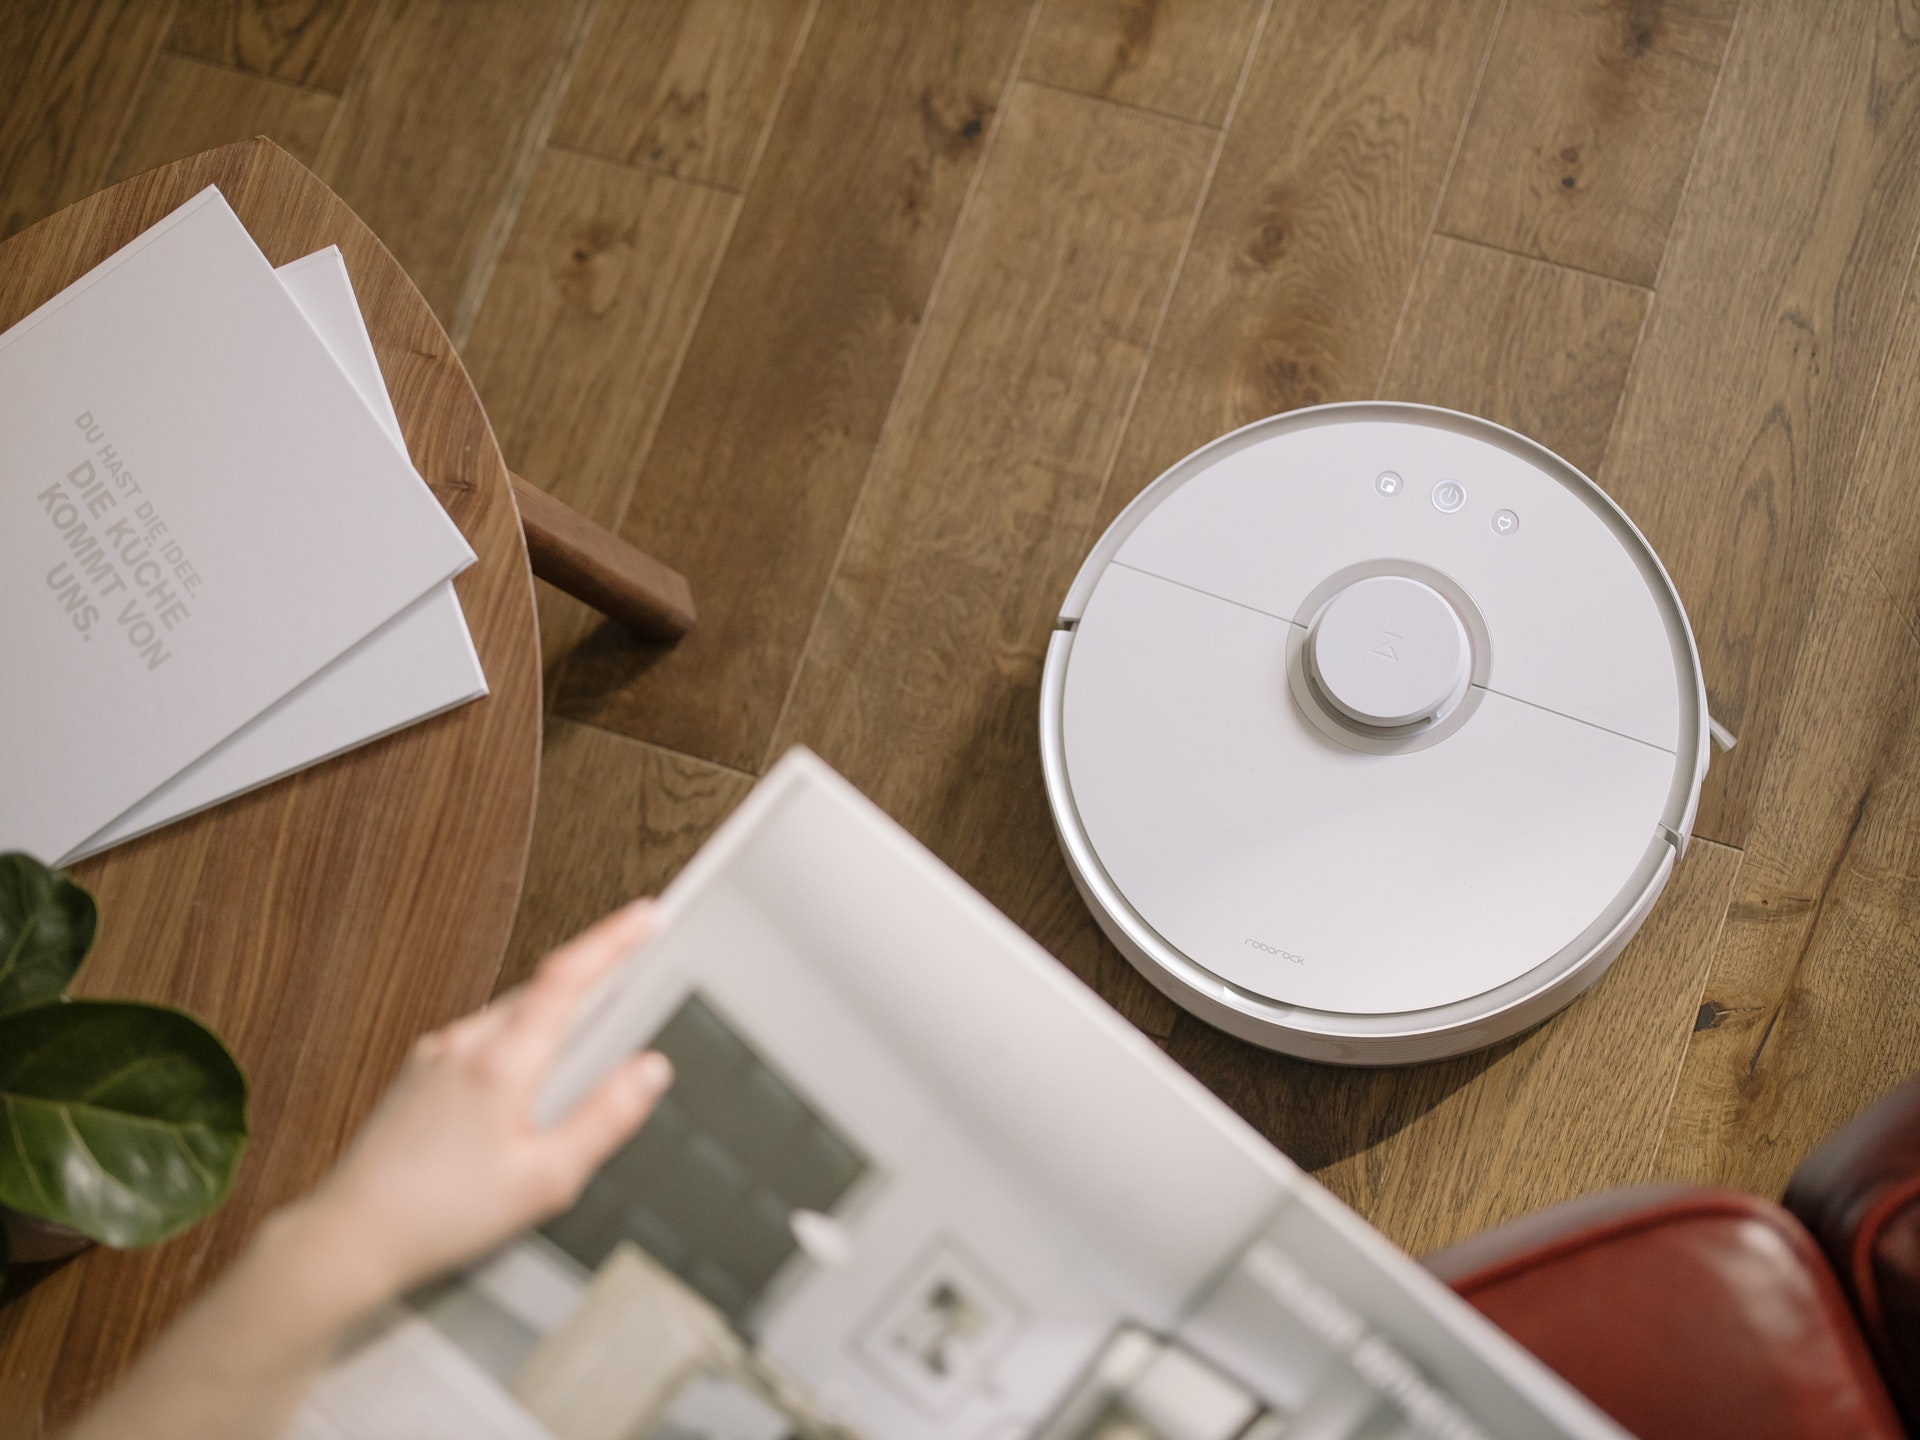 Robot Vacuums: Are they Worth It?